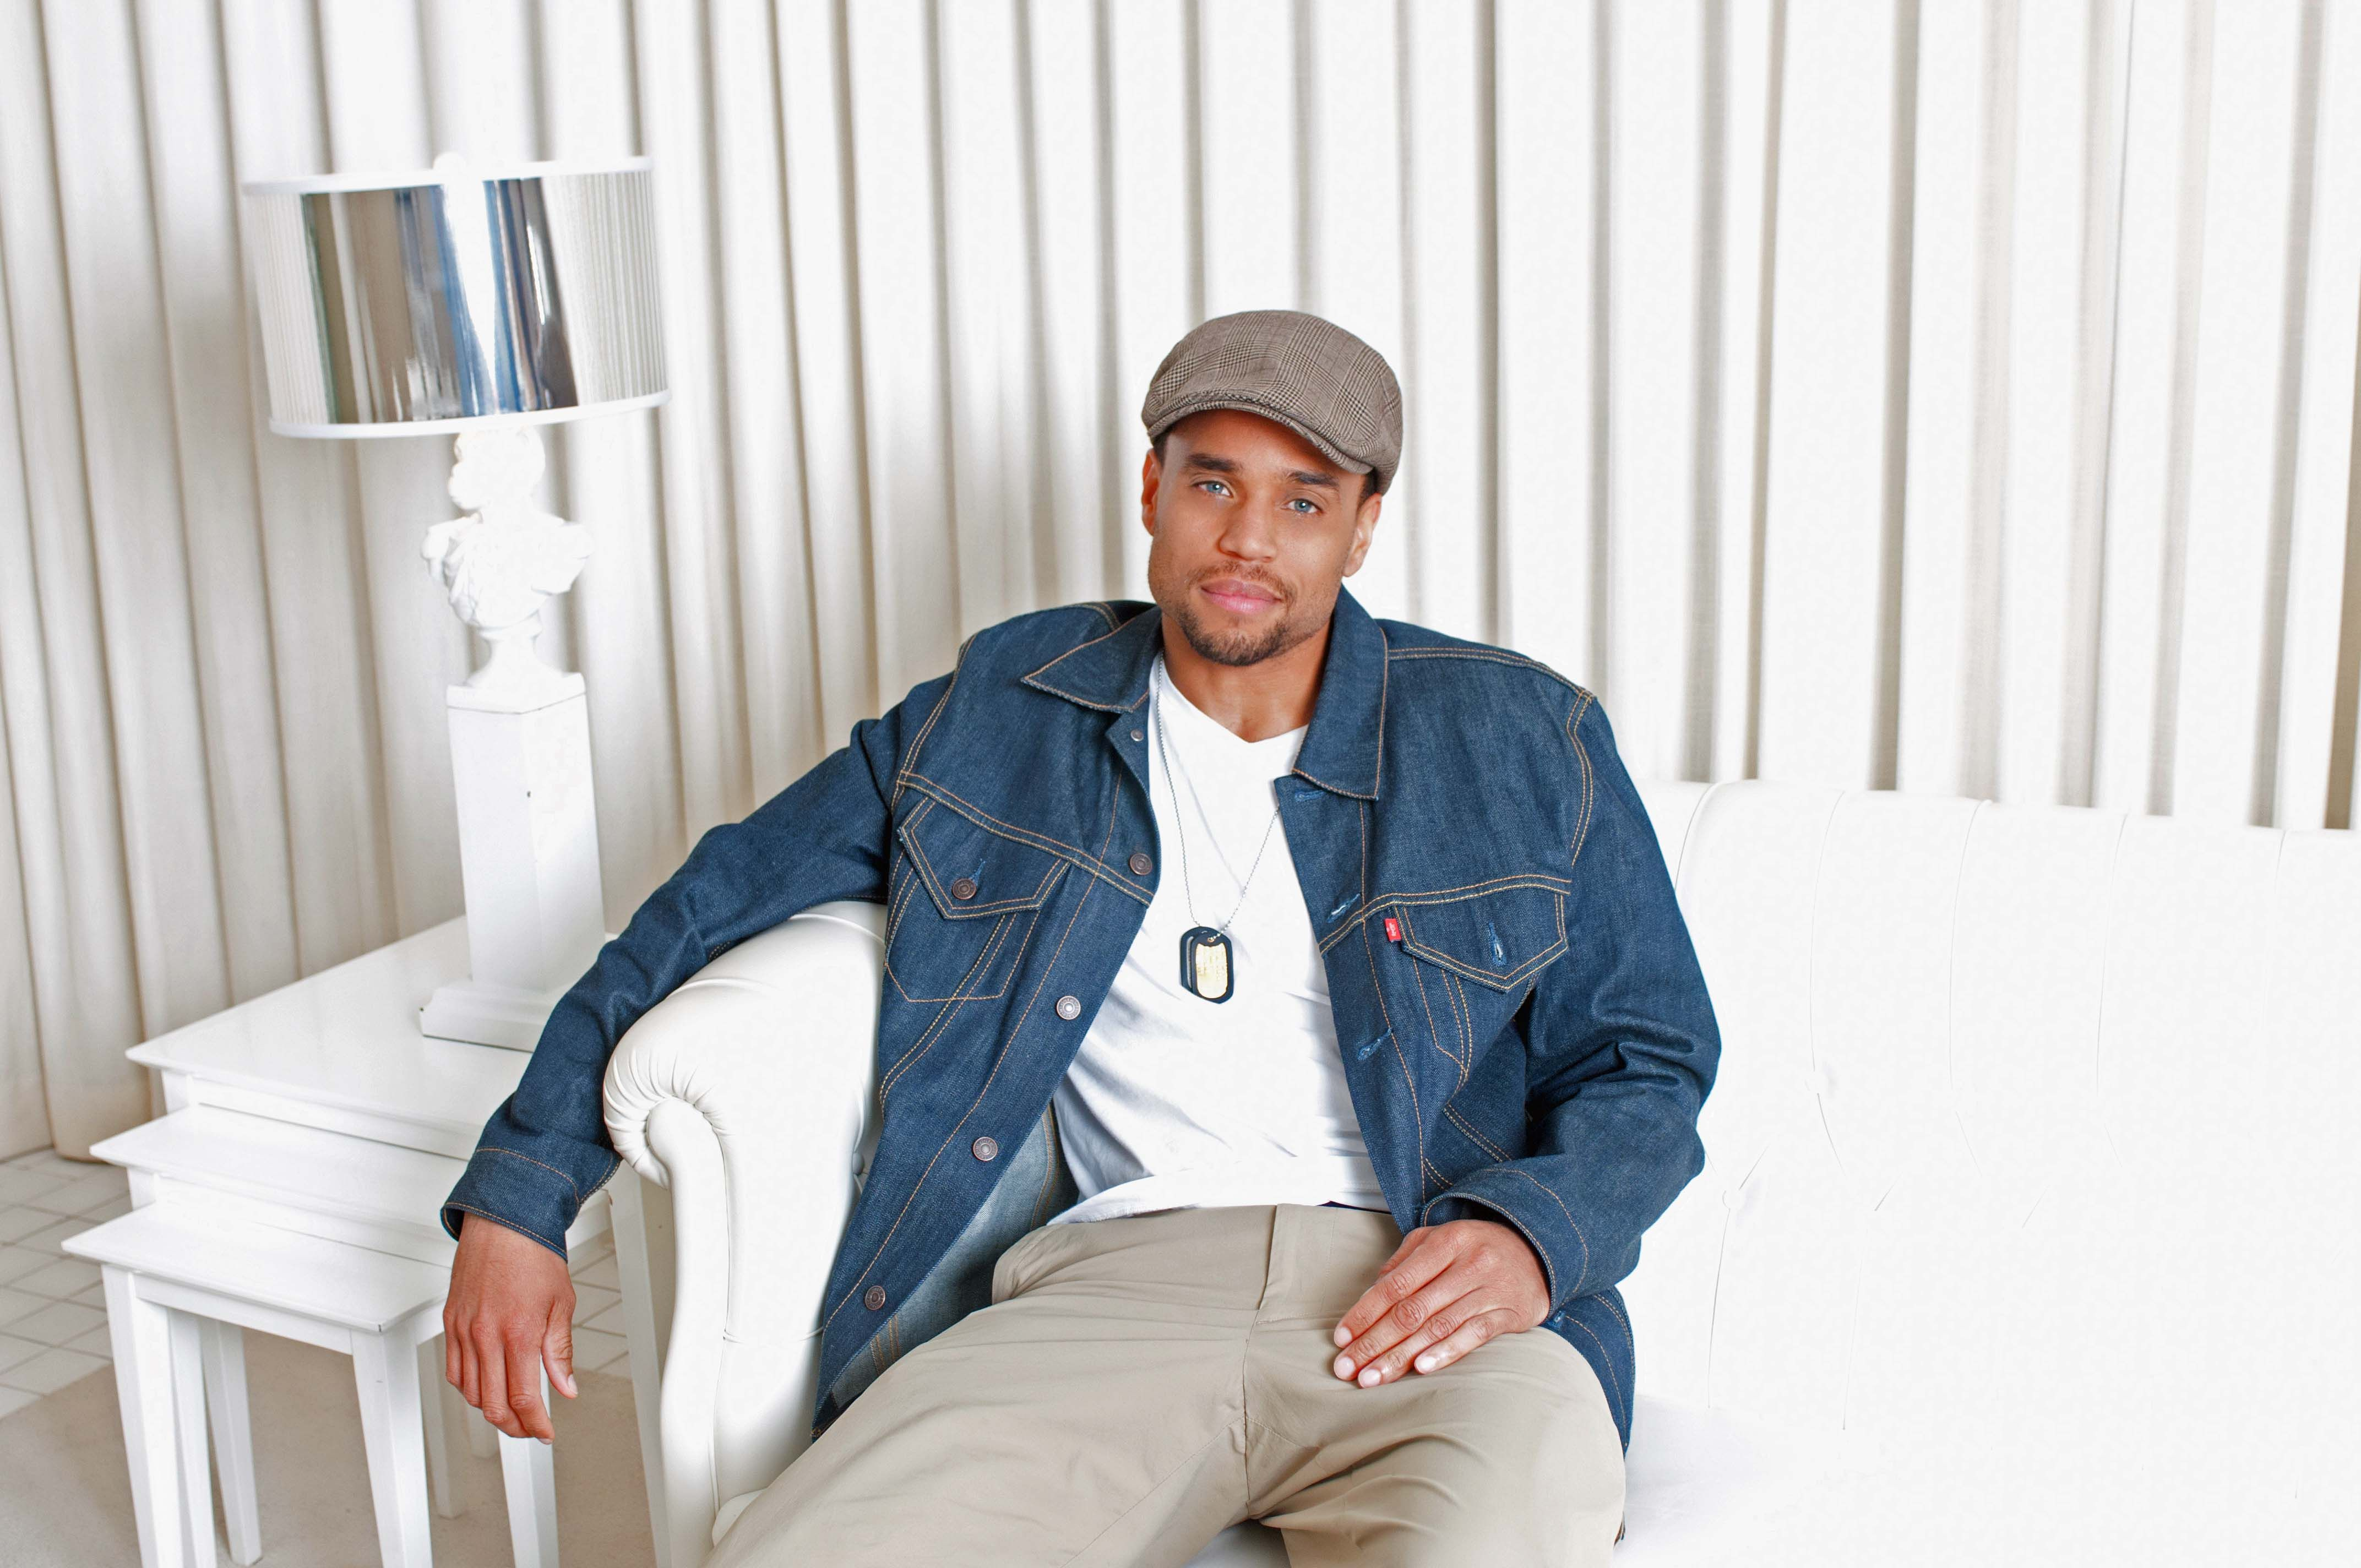 Michael Ealy: issue #22 of LATF The Magazine. All images are property of LATFUSA and LATF The Magazine. Find more at http://www.latfthemagazine.com/magazine/022/michaelealy.html